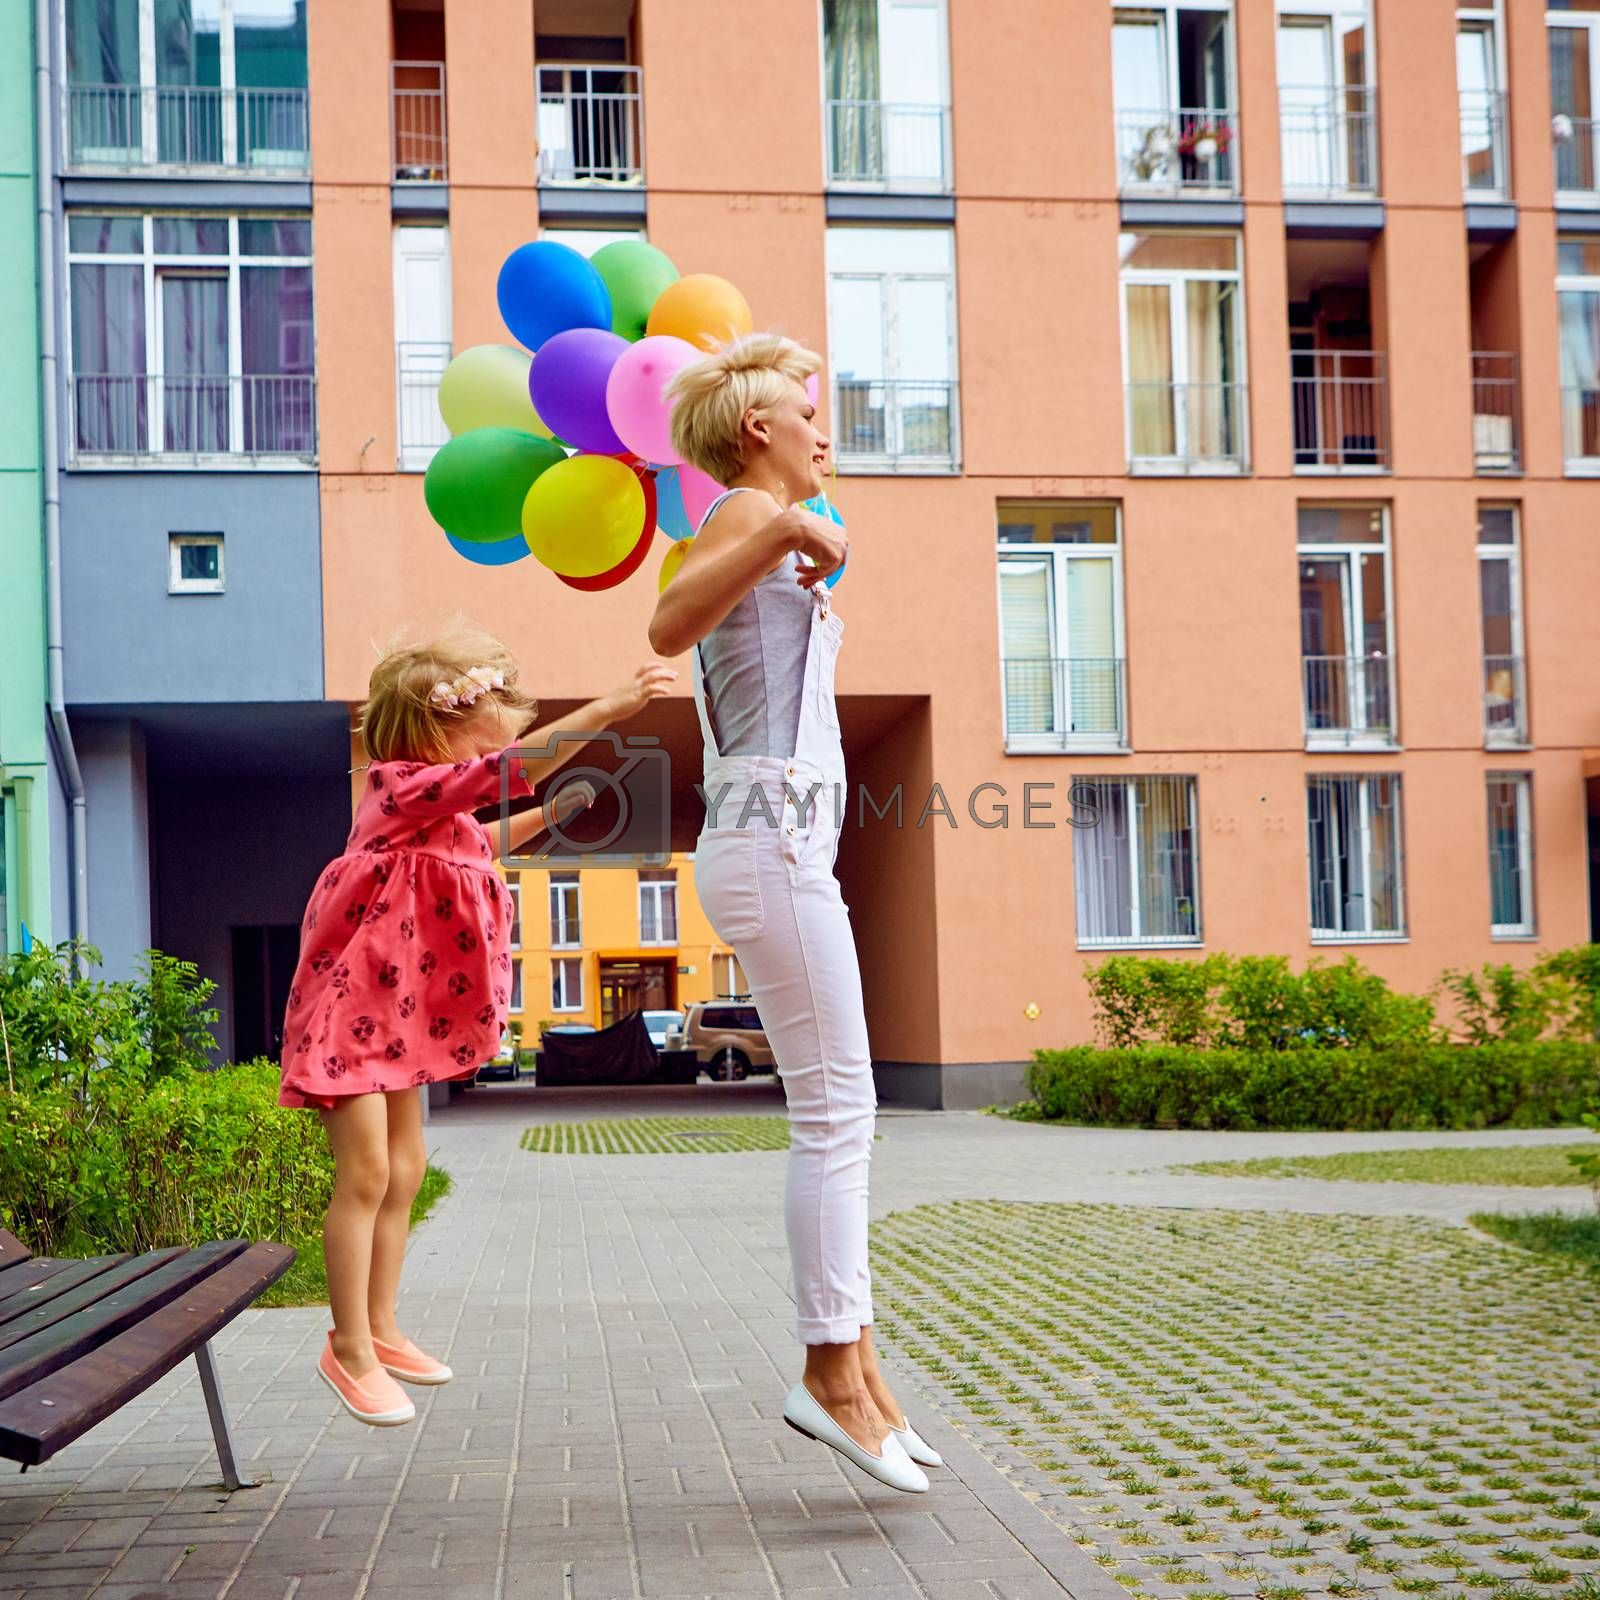 summer holidays, celebration, family, children and people concept - mother and child with colorful balloons, jumping